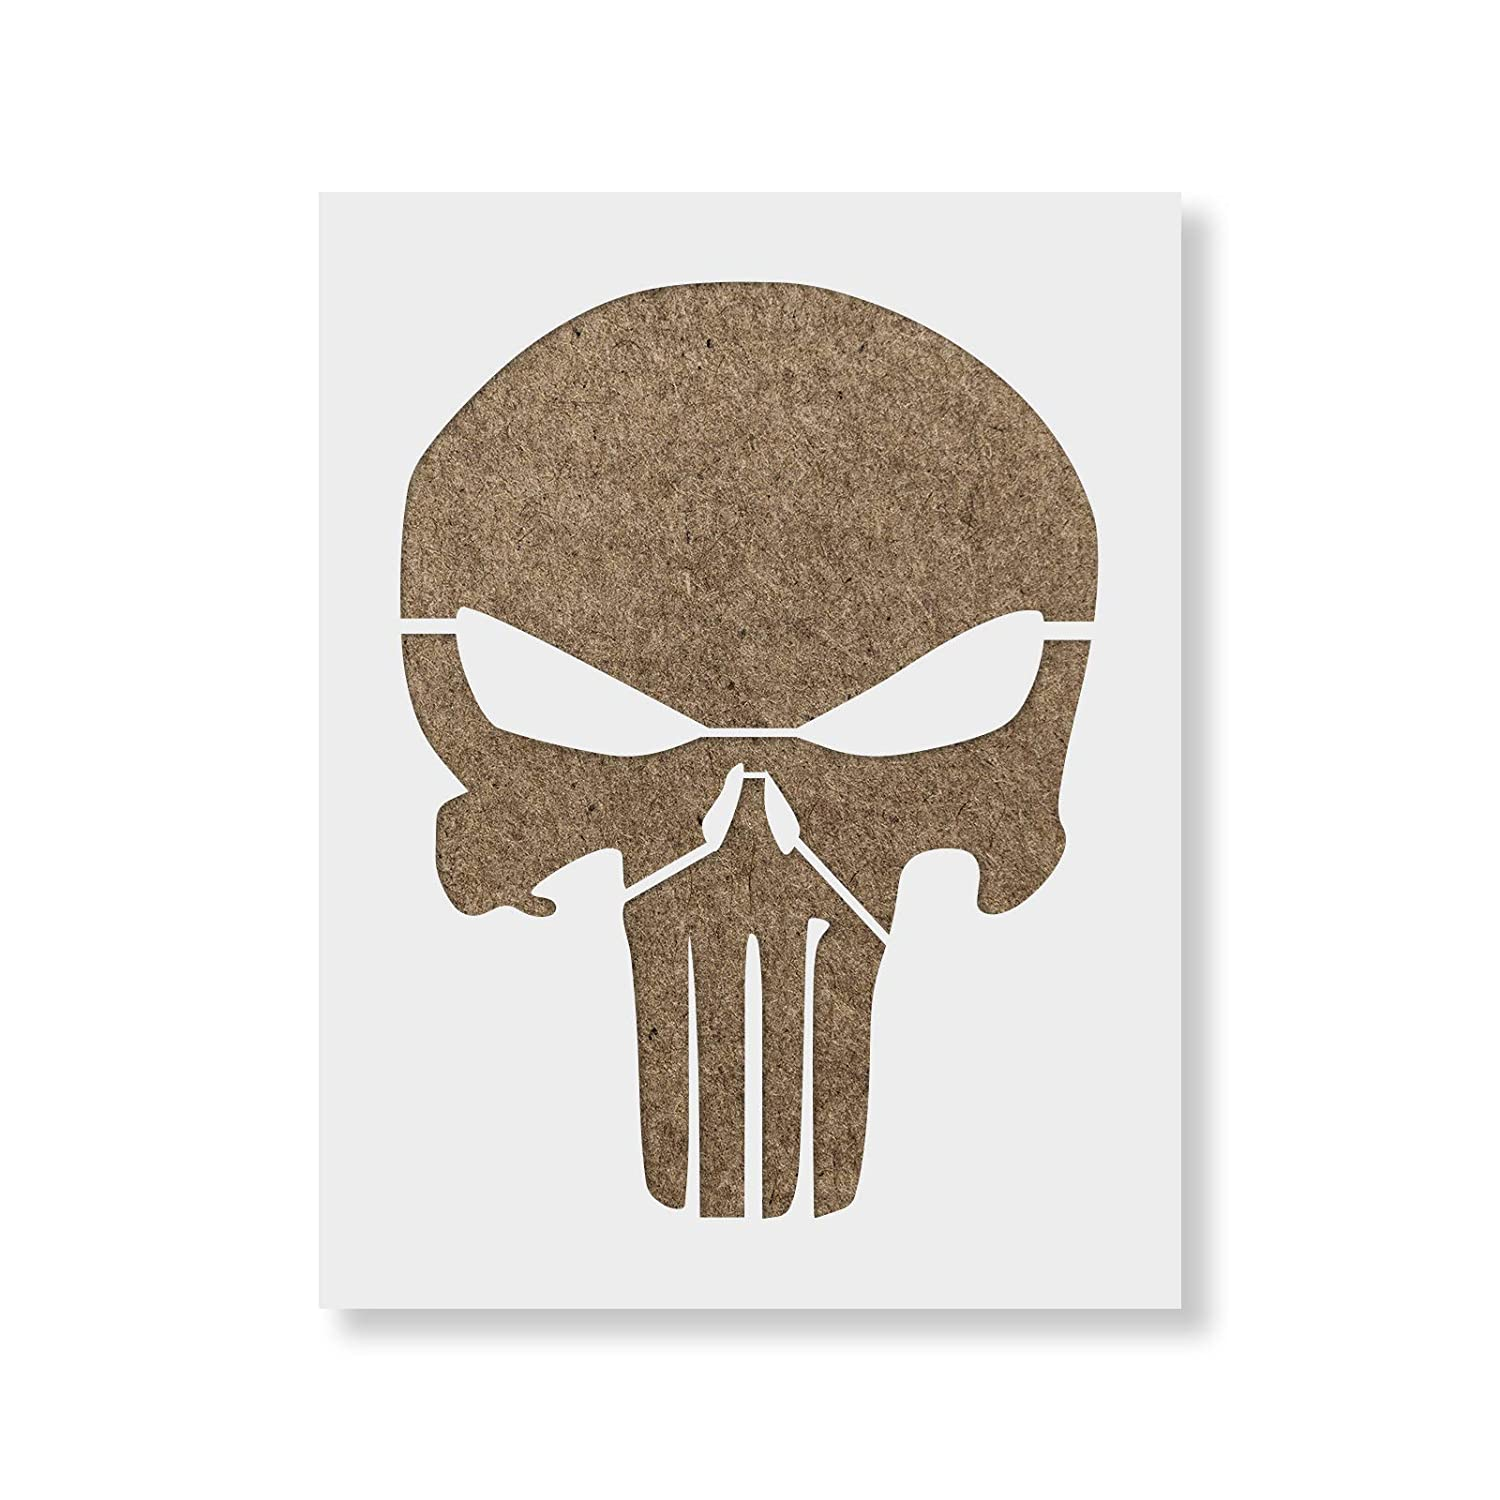 Punisher Skull Stencil Template - Reusable Stencil with Multiple Sizes Available Stencil Revolution